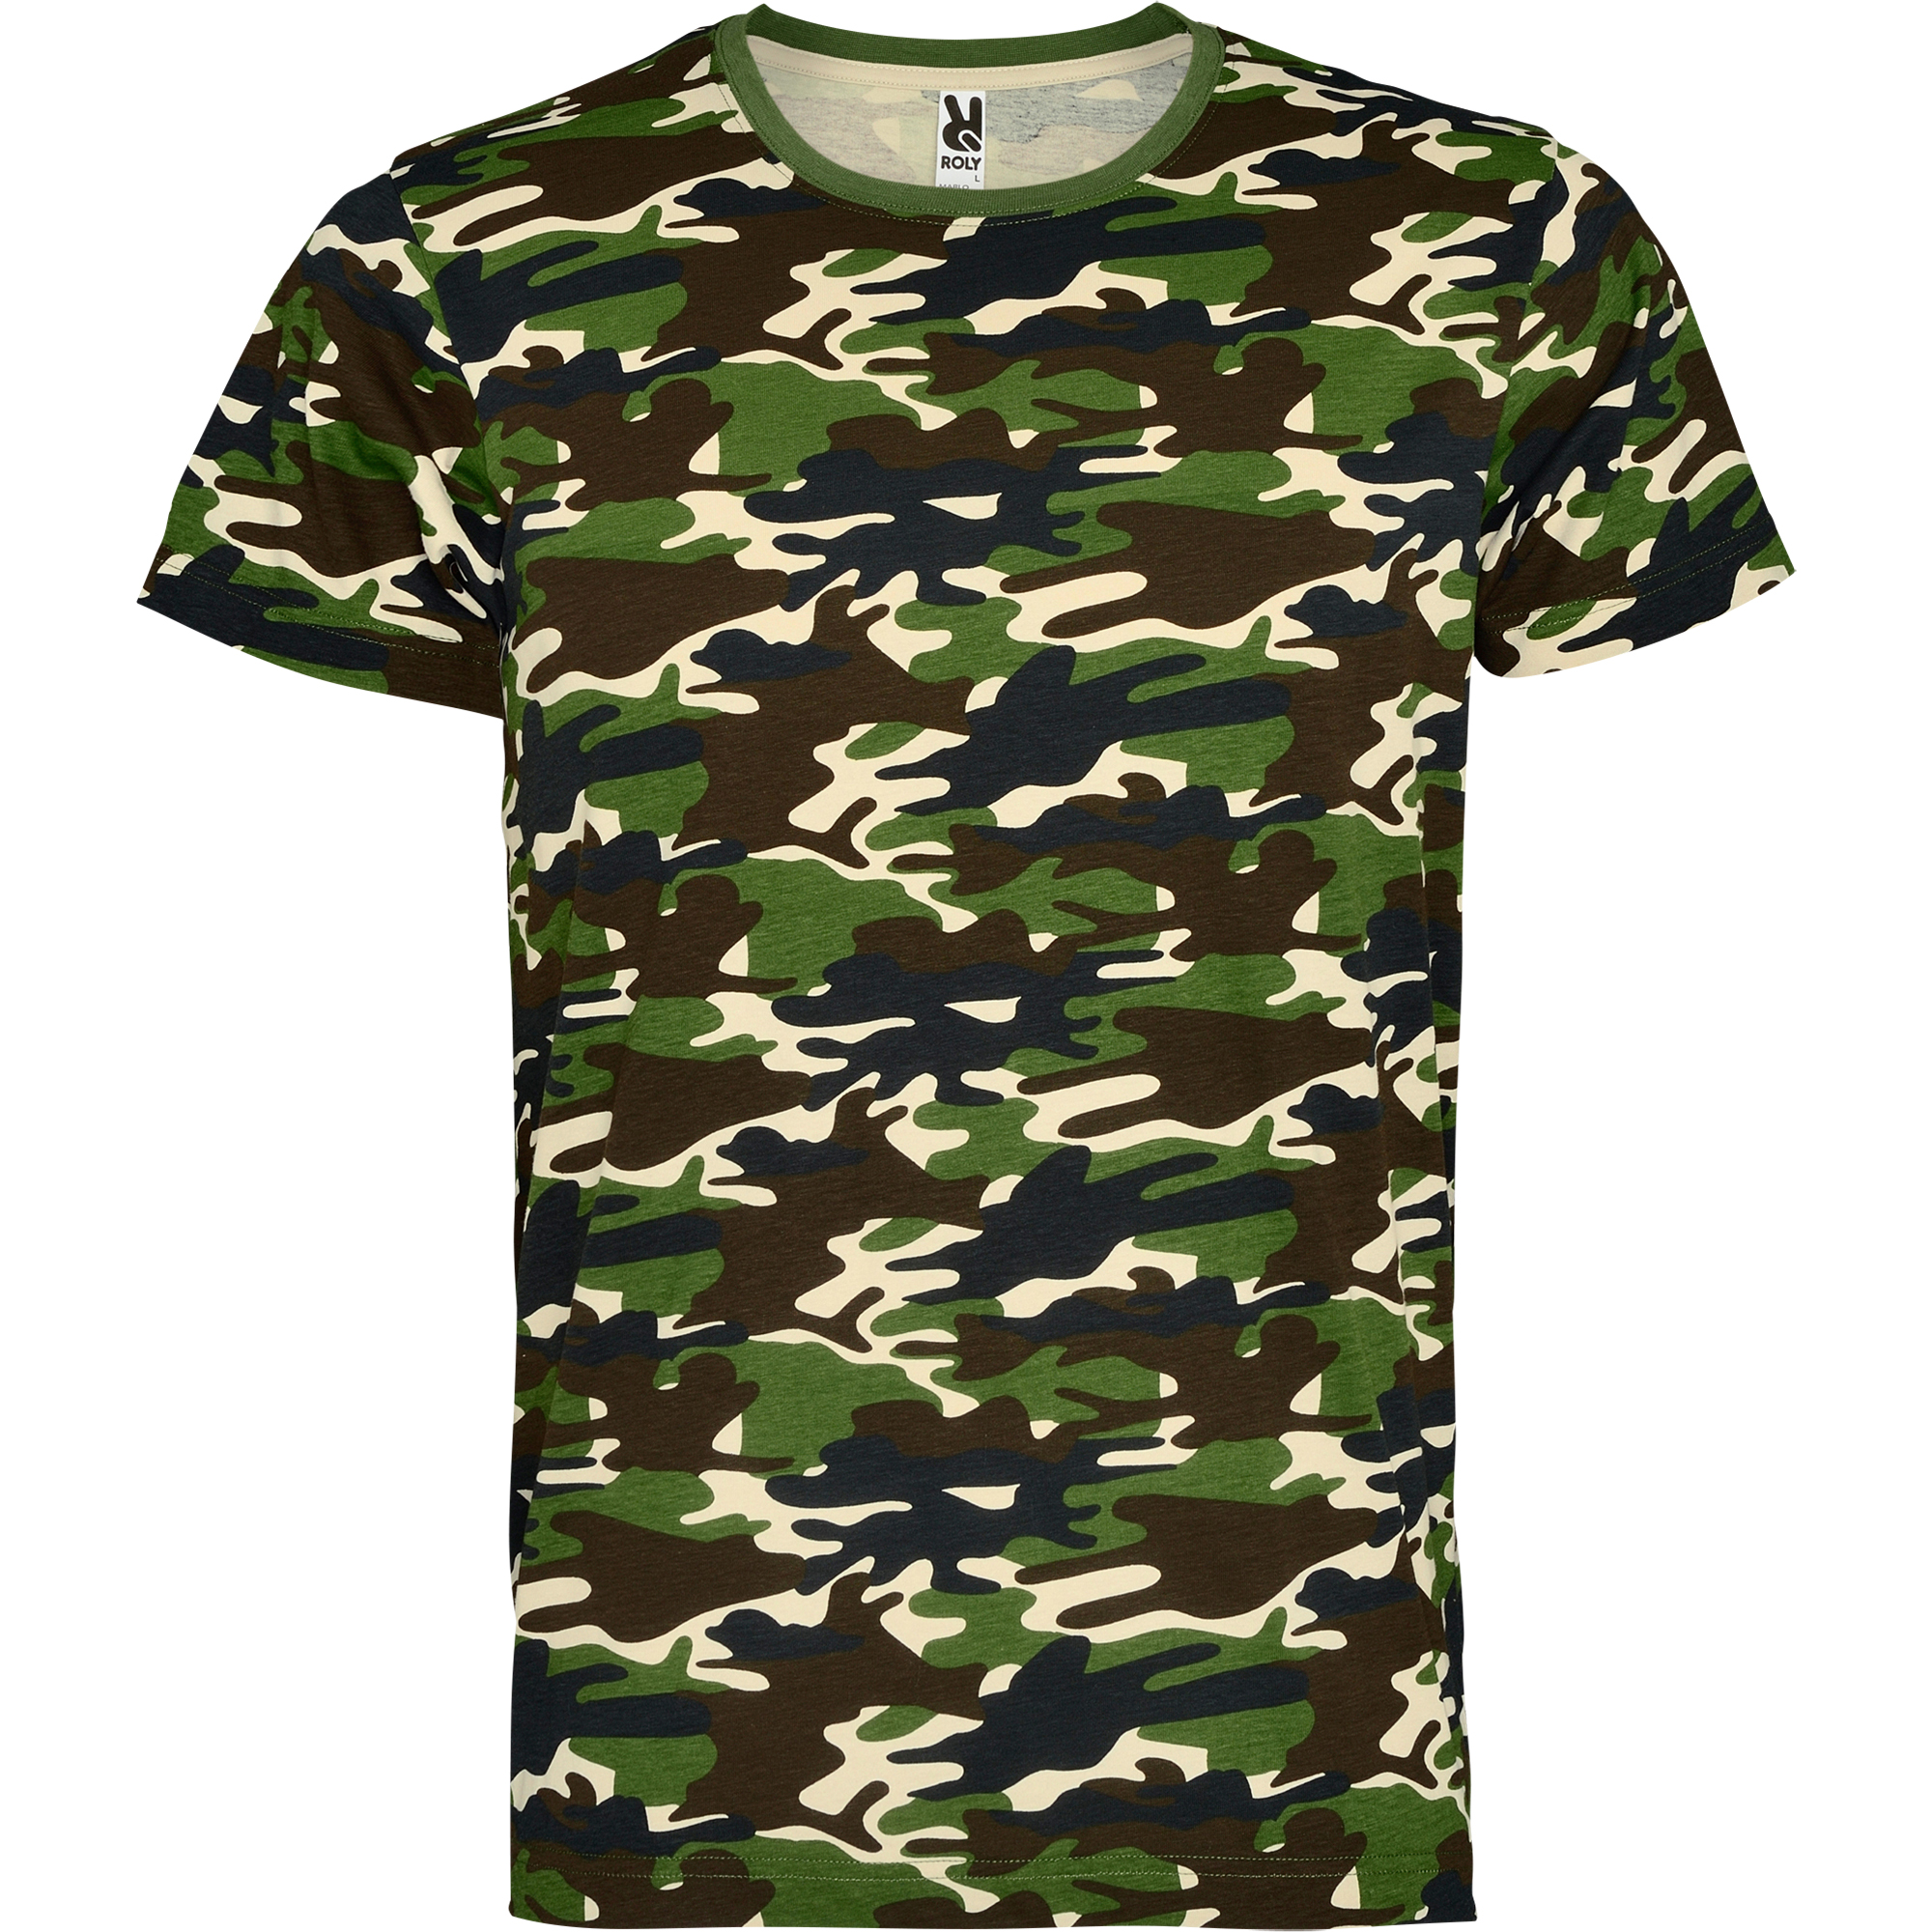 T Shirt Promotional Marlo Cf1033 Forest Camouflage Roly